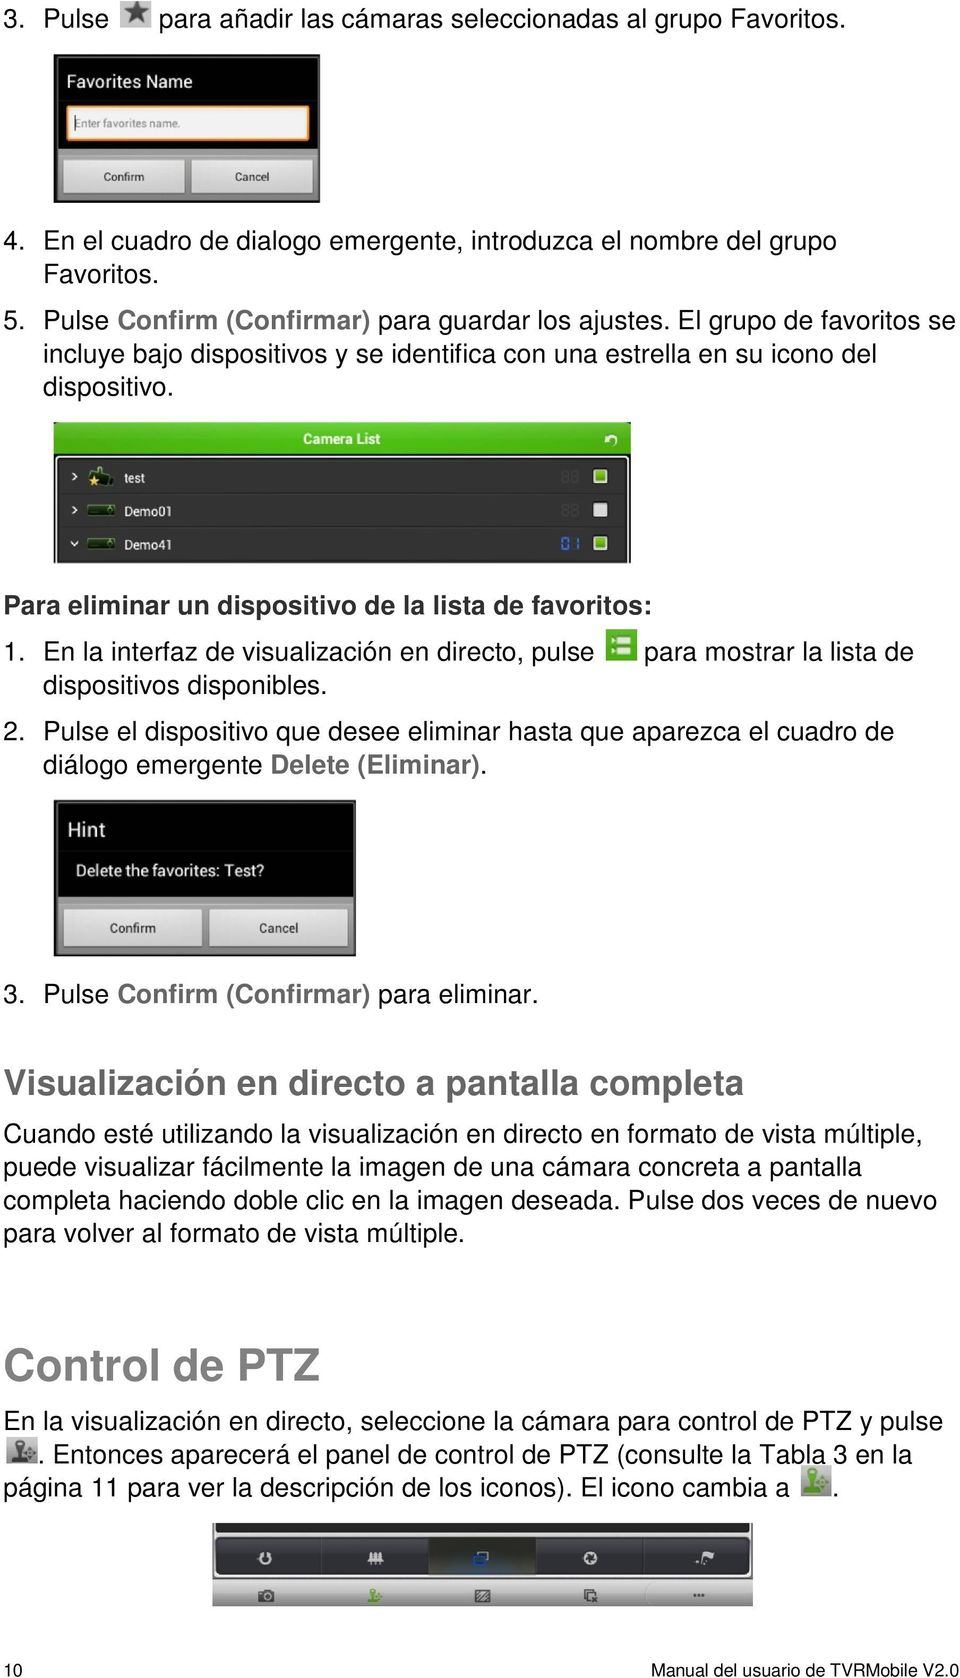 Para eliminar un dispositivo de la lista de favoritos: 1. En la interfaz de visualización en directo, pulse para mostrar la lista de dispositivos disponibles. 2.